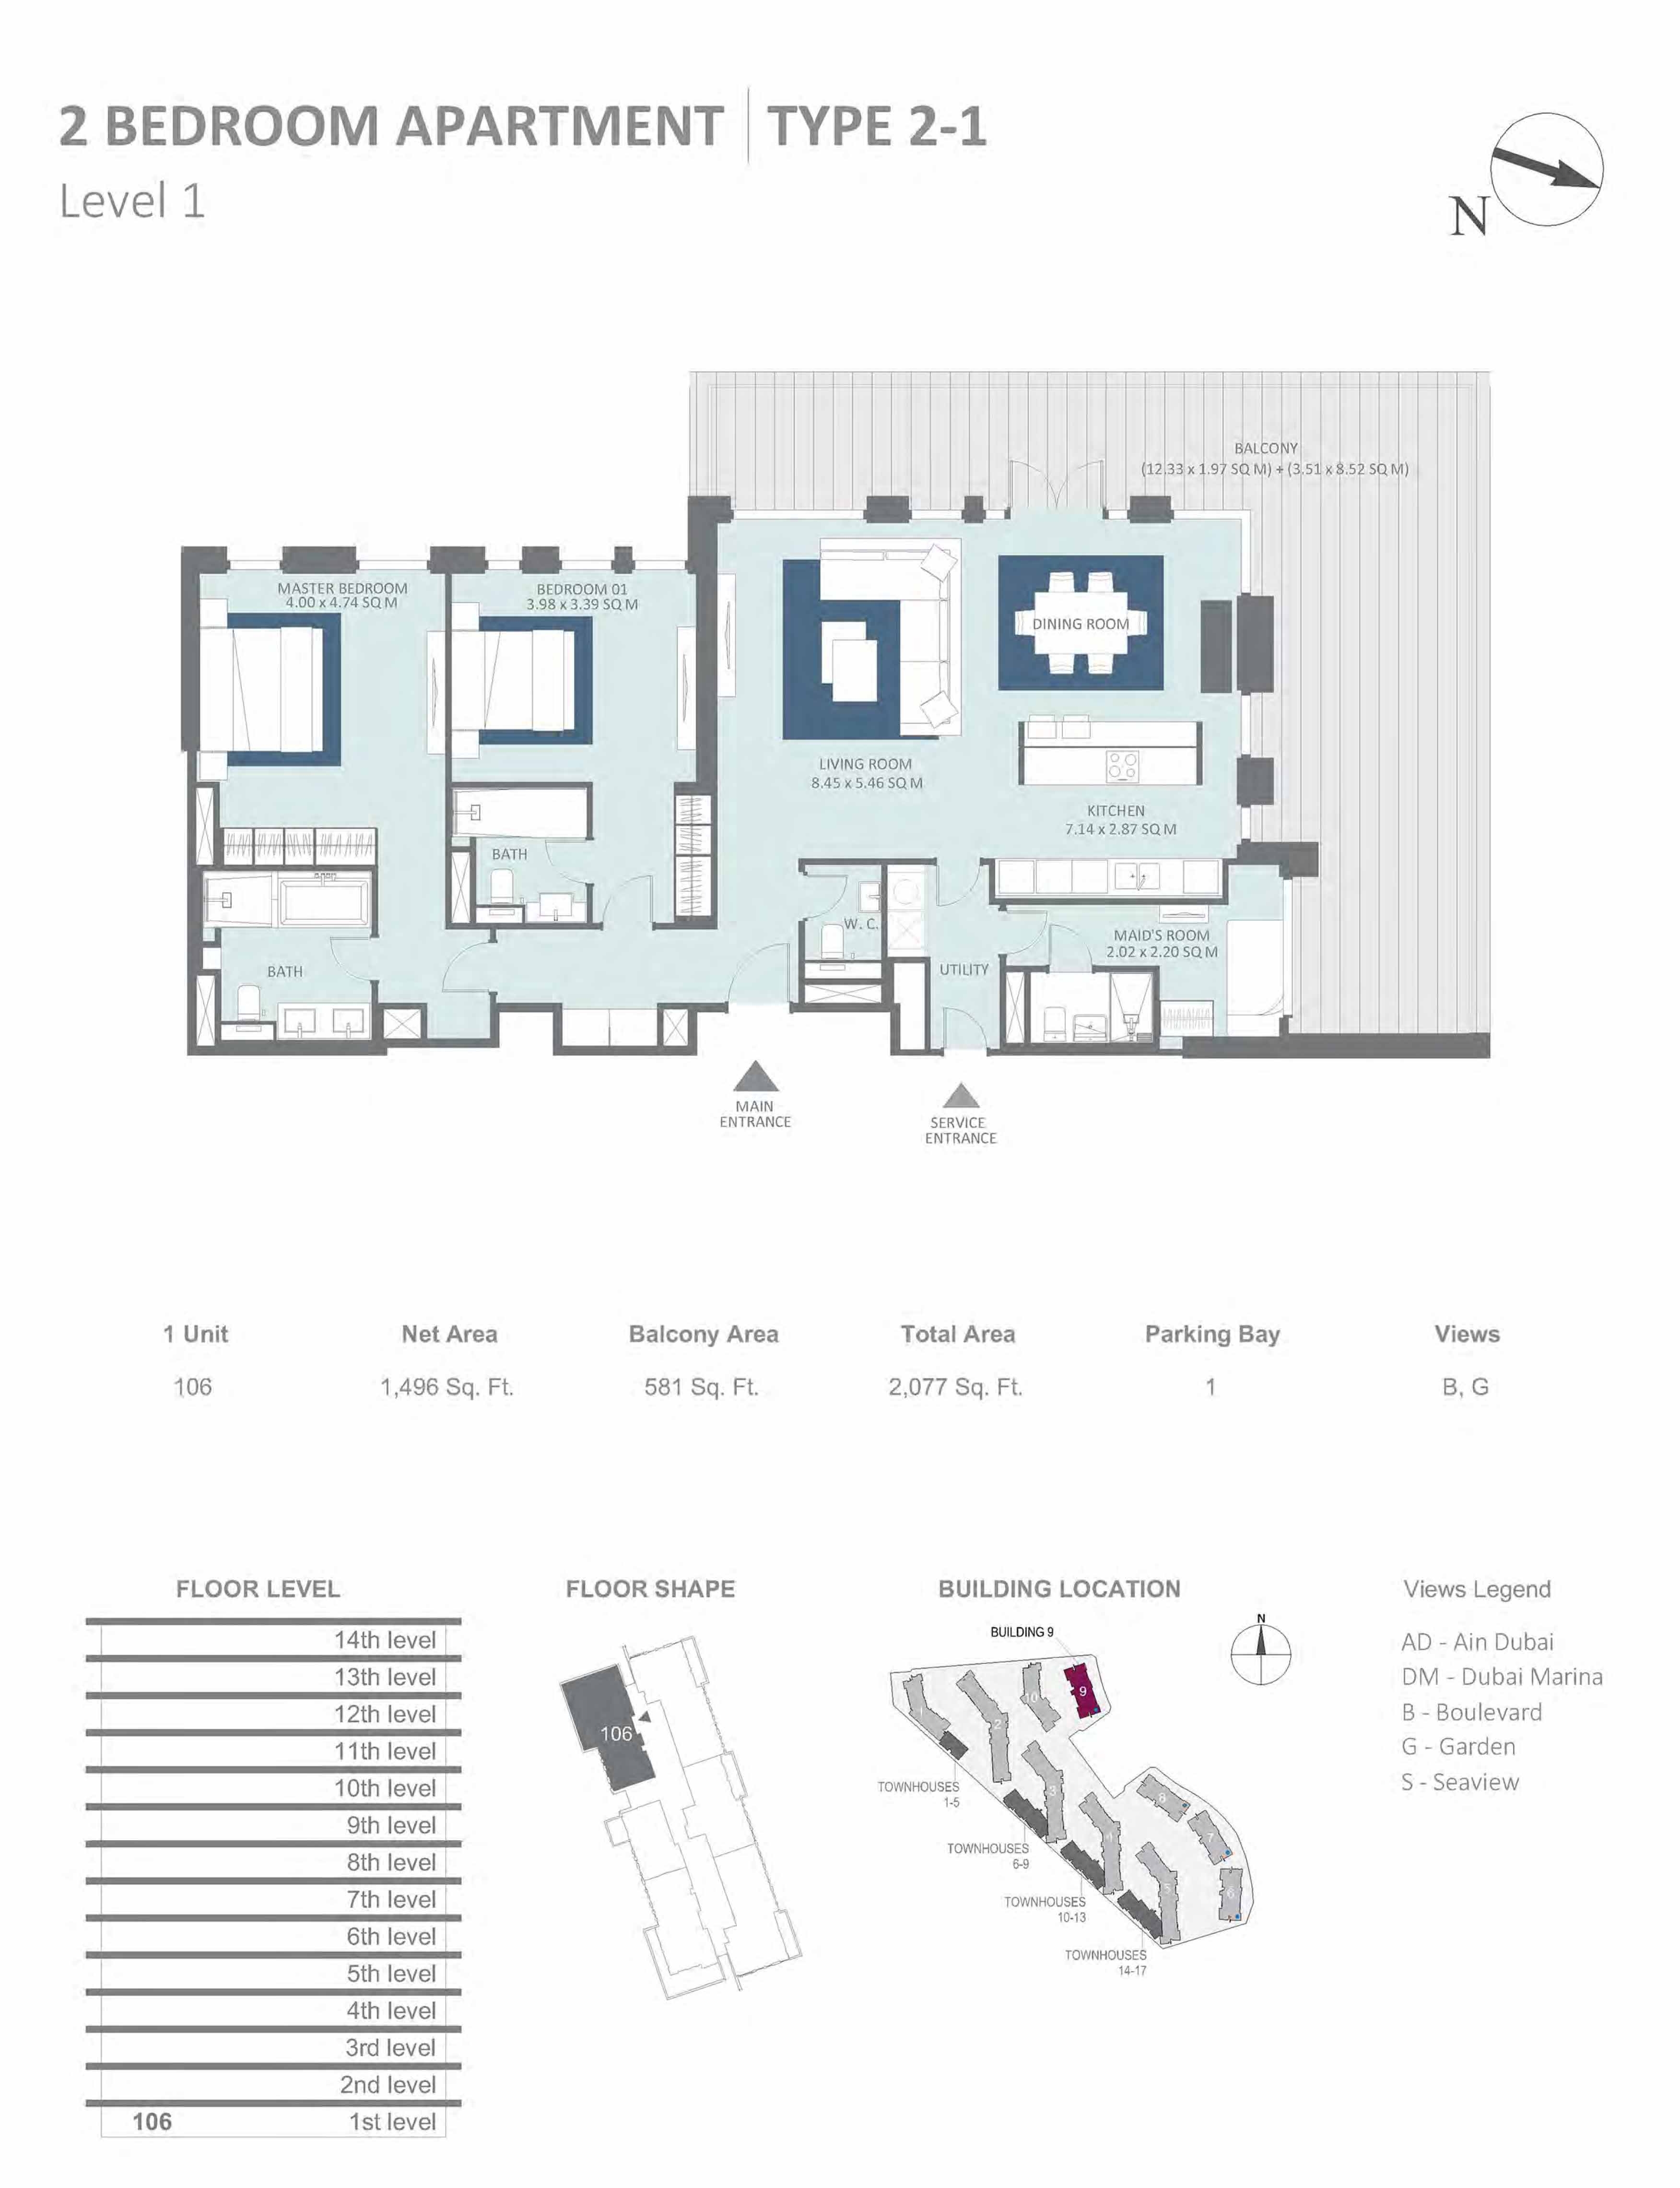 Building 9 - 2 Bedroom Type 2-1, Level 1 Size 2077 sq.ft